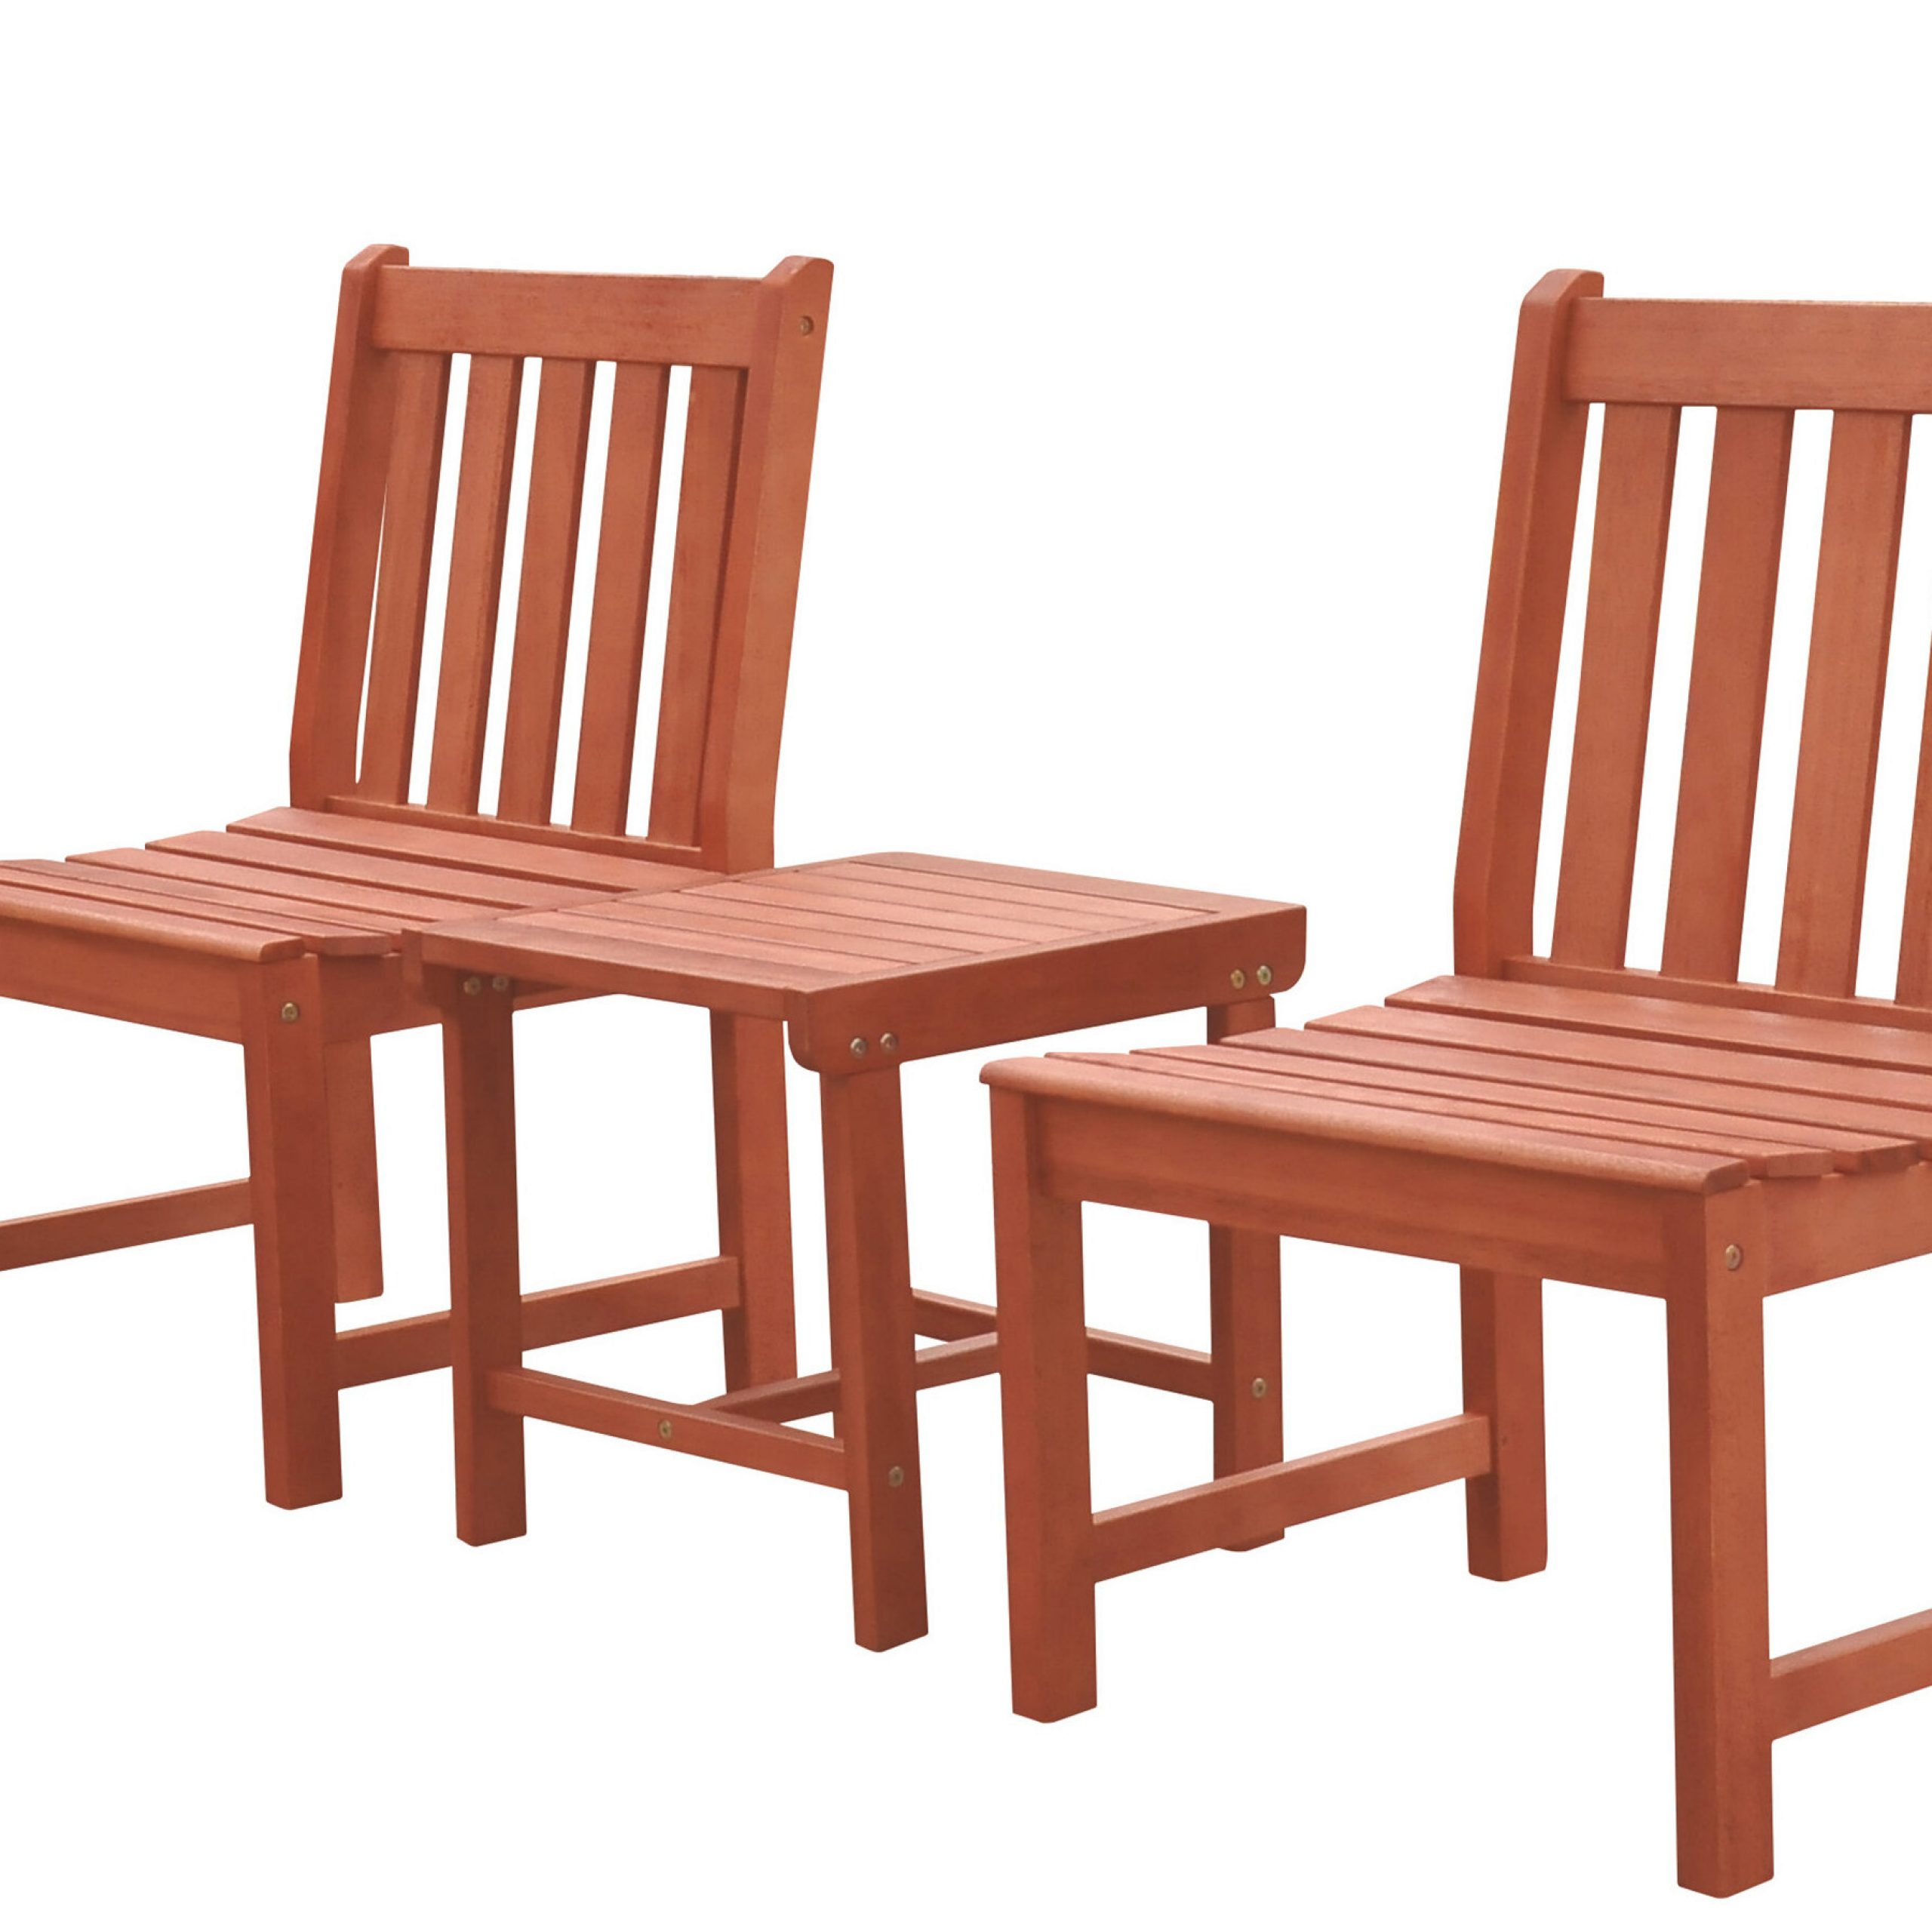 Nick 3 Piece Bistro Set Intended For Amabel Patio Diamond Wooden Garden Benches (View 23 of 25)